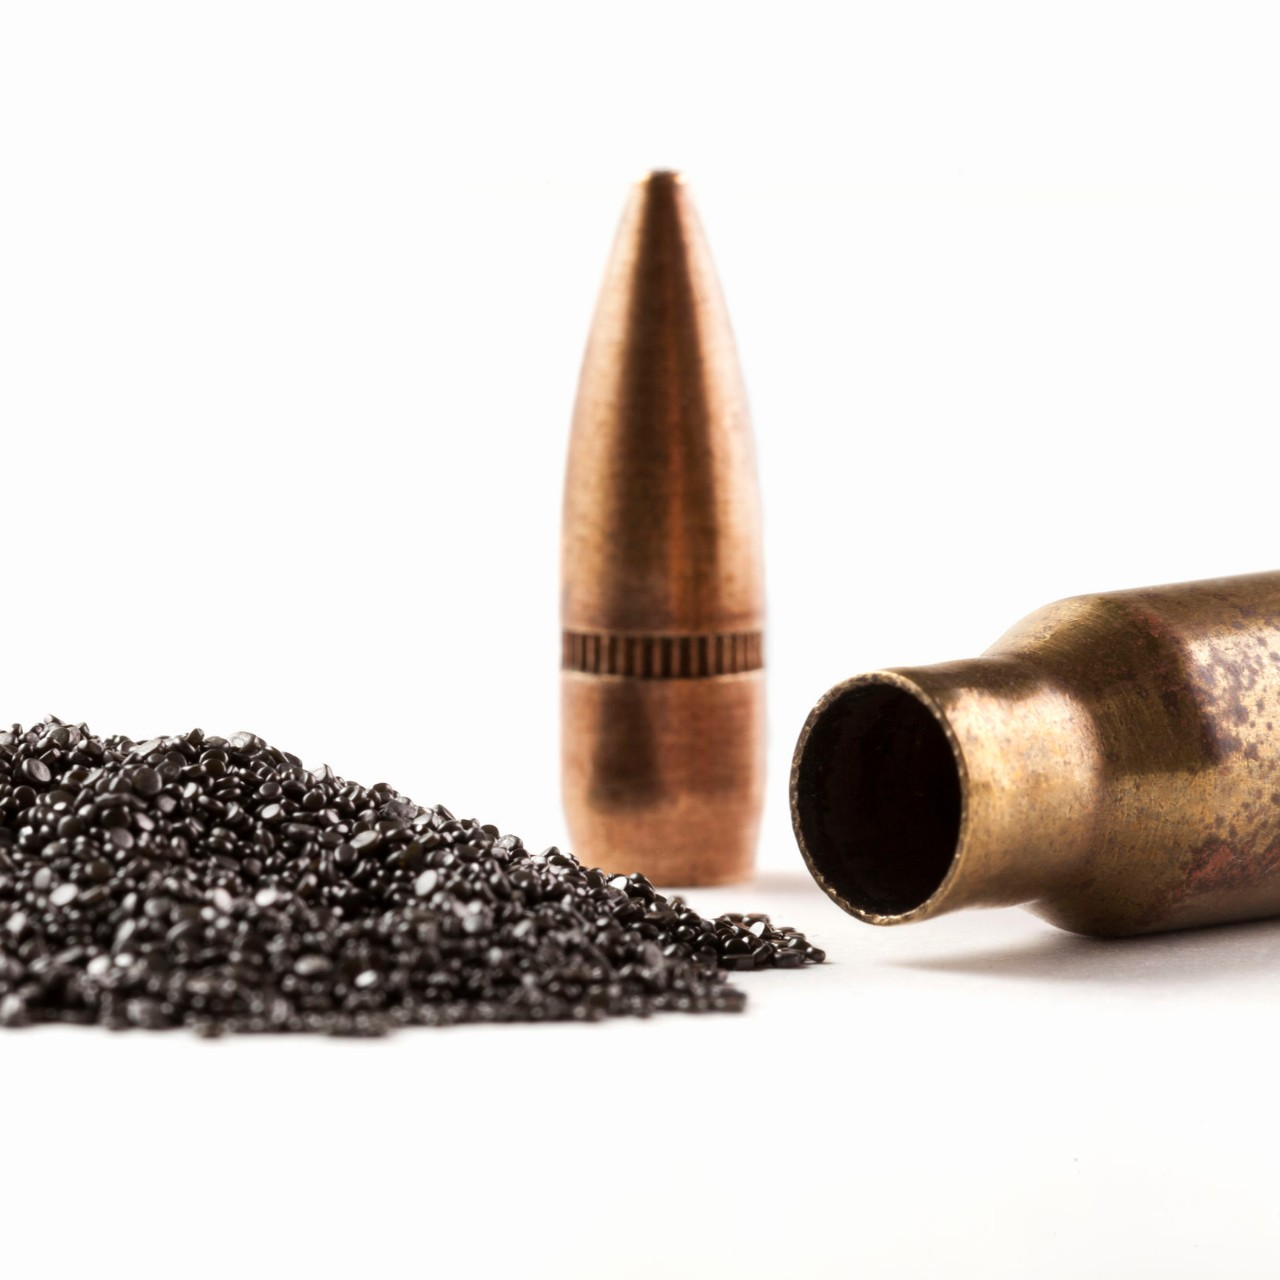 a bullet casing rests on its side